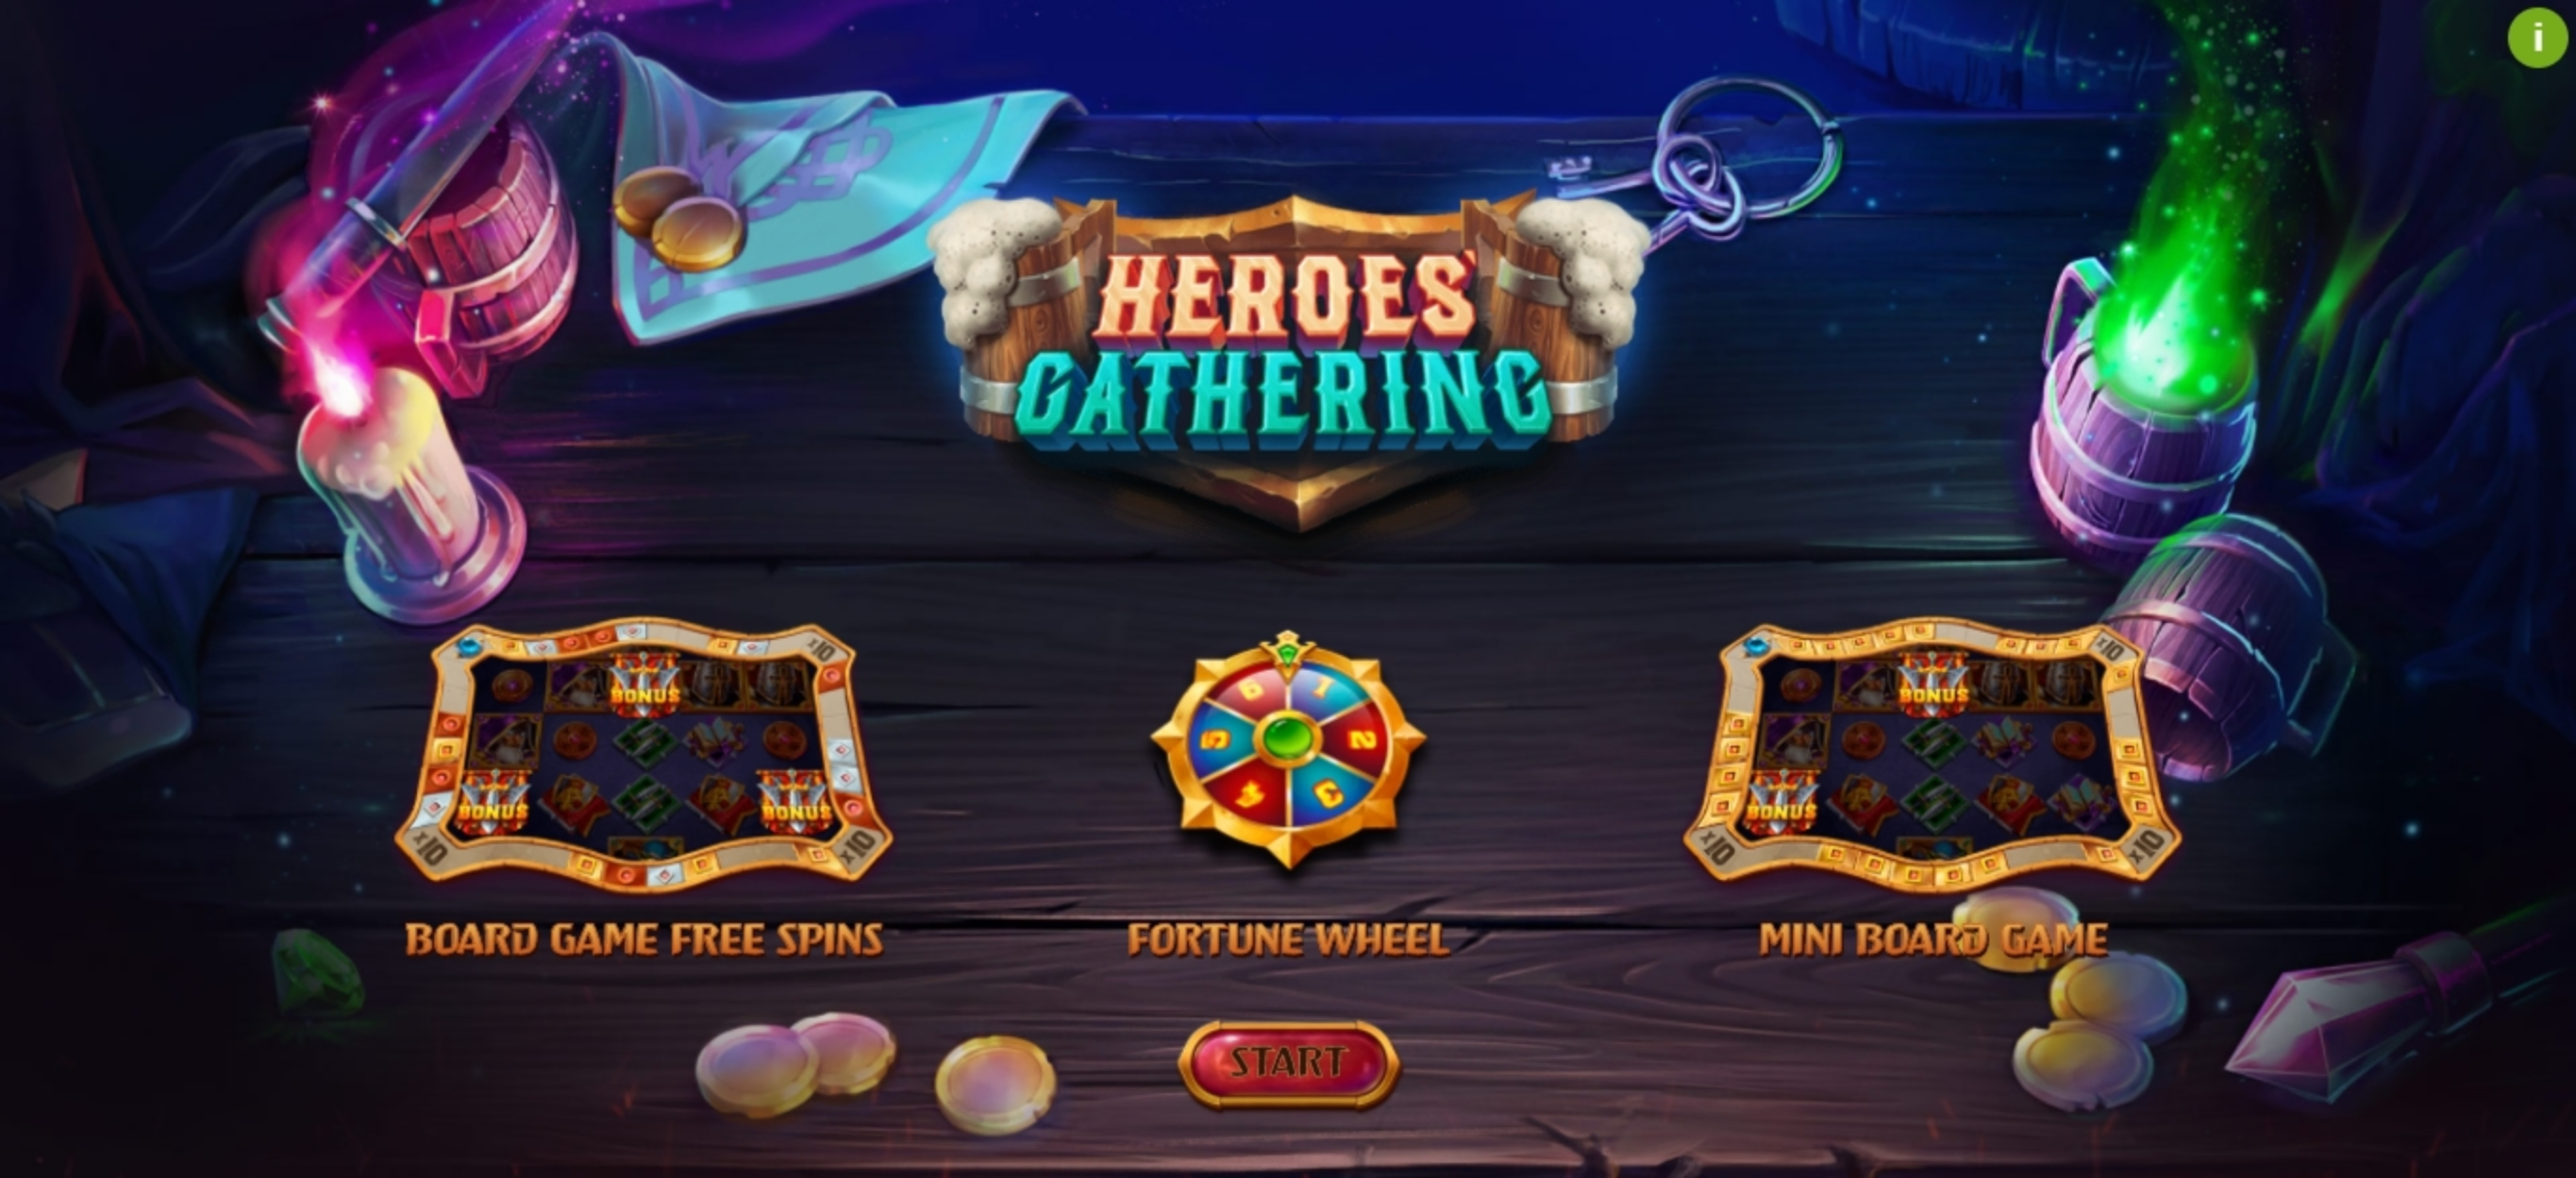 Play Heroes Gathering Free Casino Slot Game by Relax Gaming